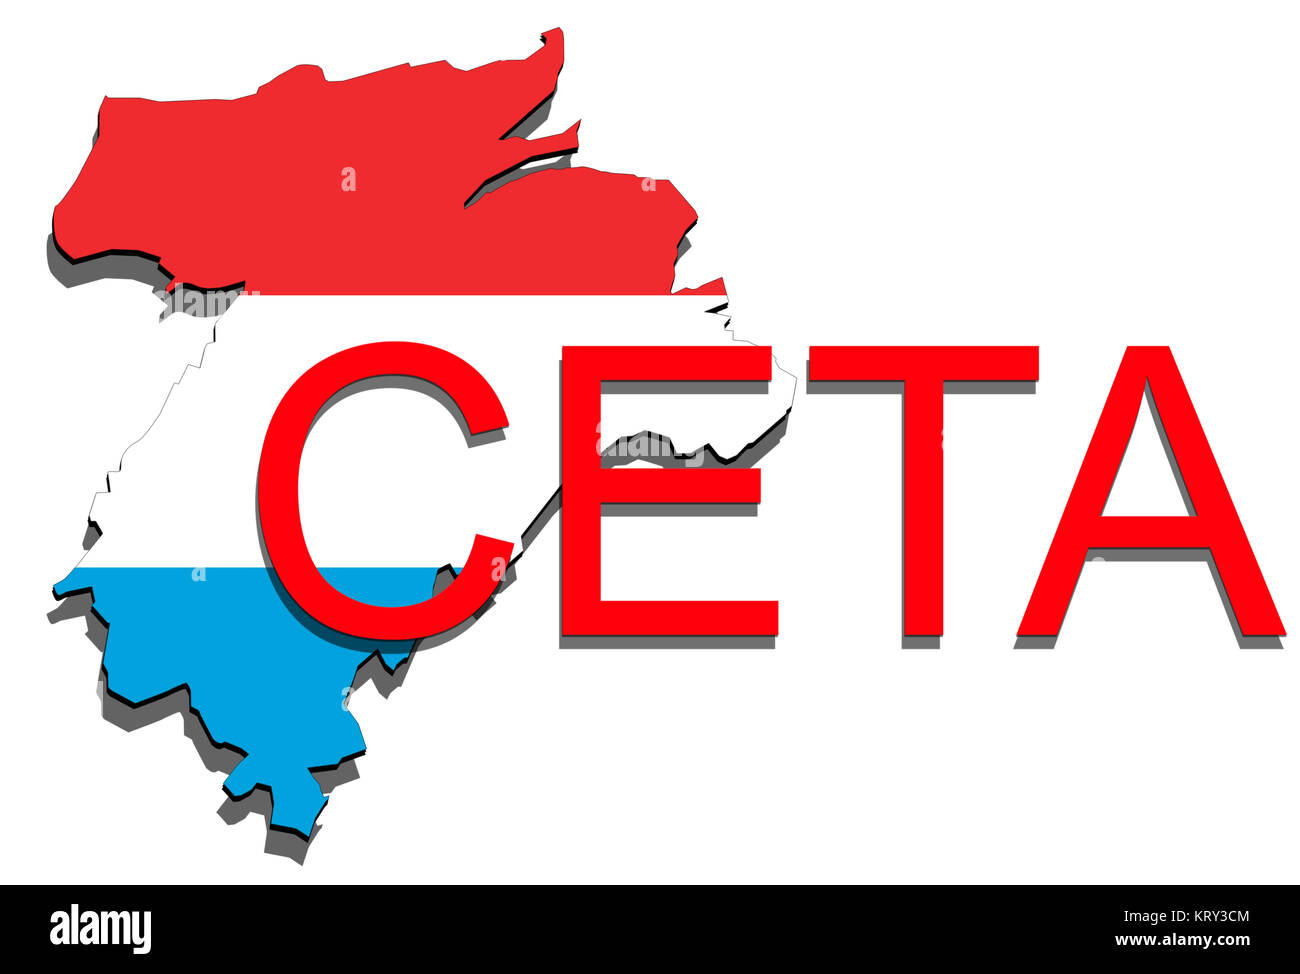 ceta - comprehensive economic and trade agreement,luxembourg map on white background - Stock Image